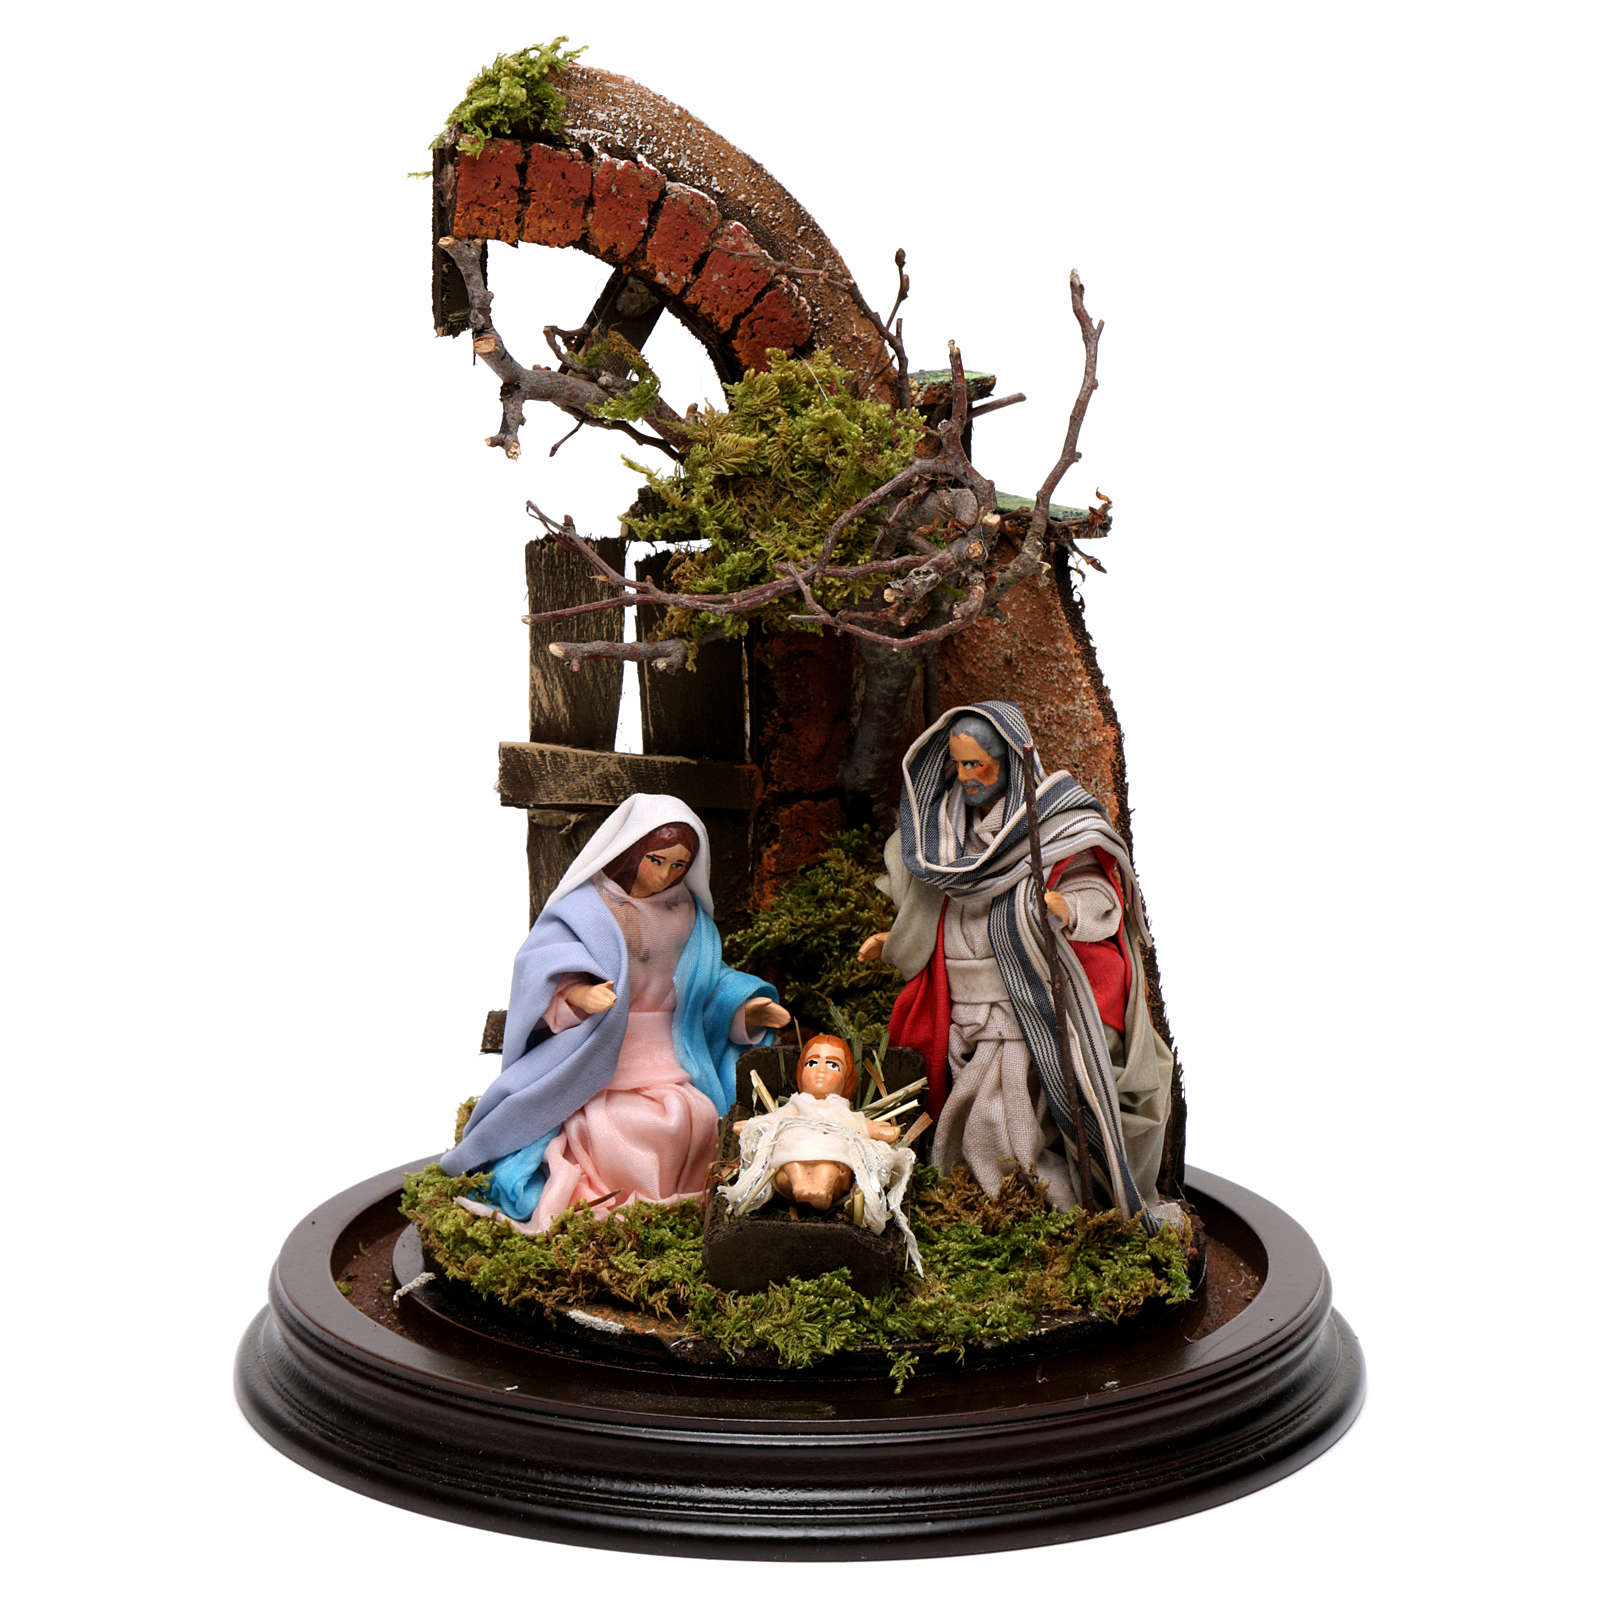 Neapolitan Nativity Scene Holy Family with setting in glass dome 24.5cm 4